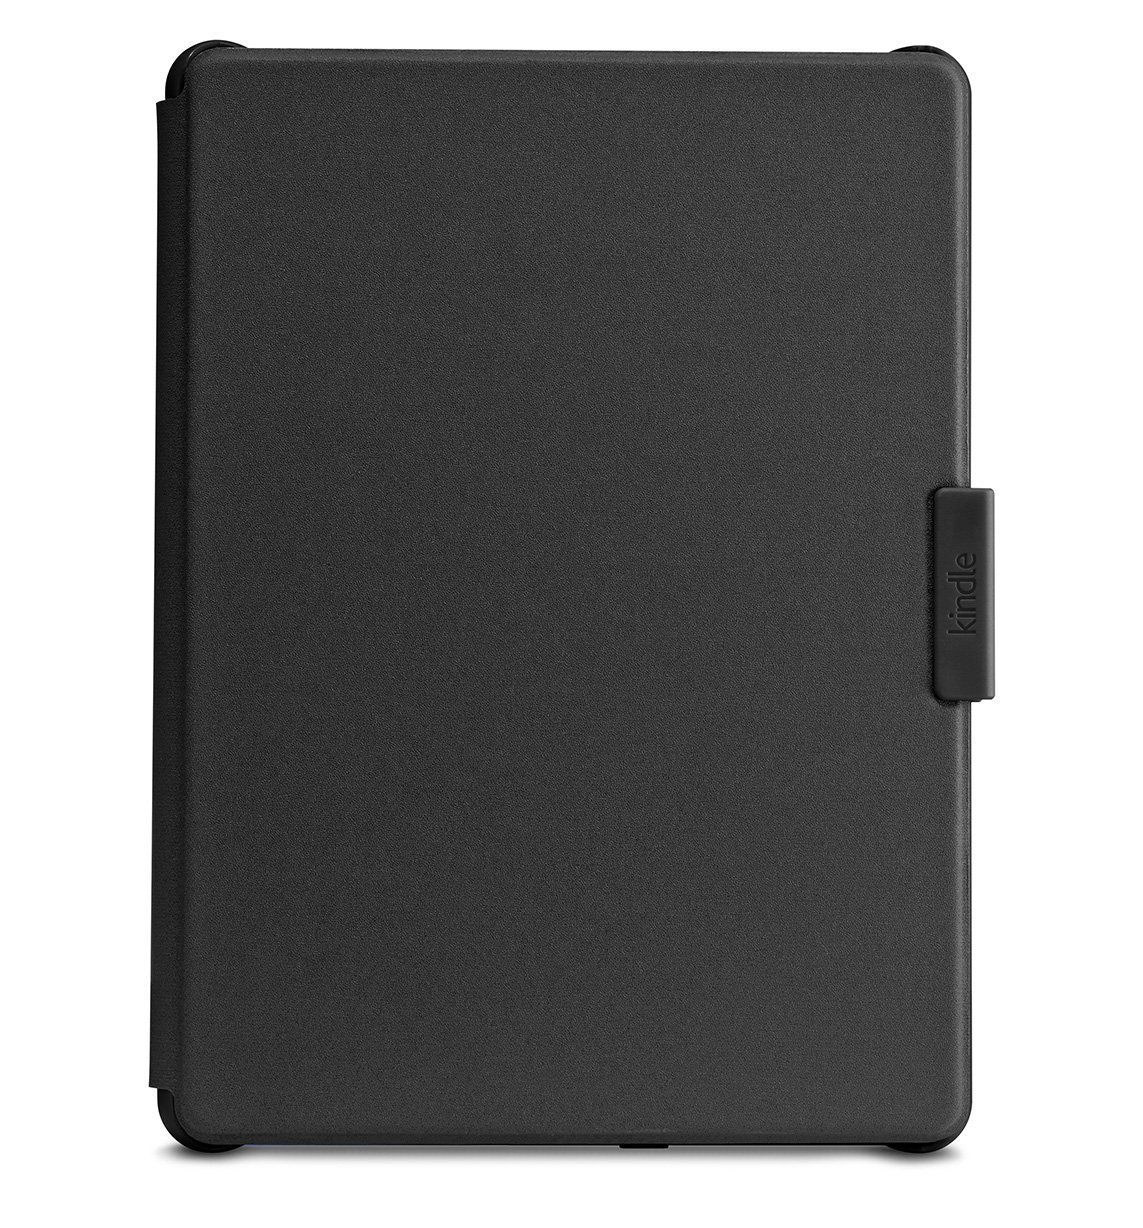 Чехол обложка Amazon Cover Case for All-New Kindle 8 (2016) Black. Фото N2